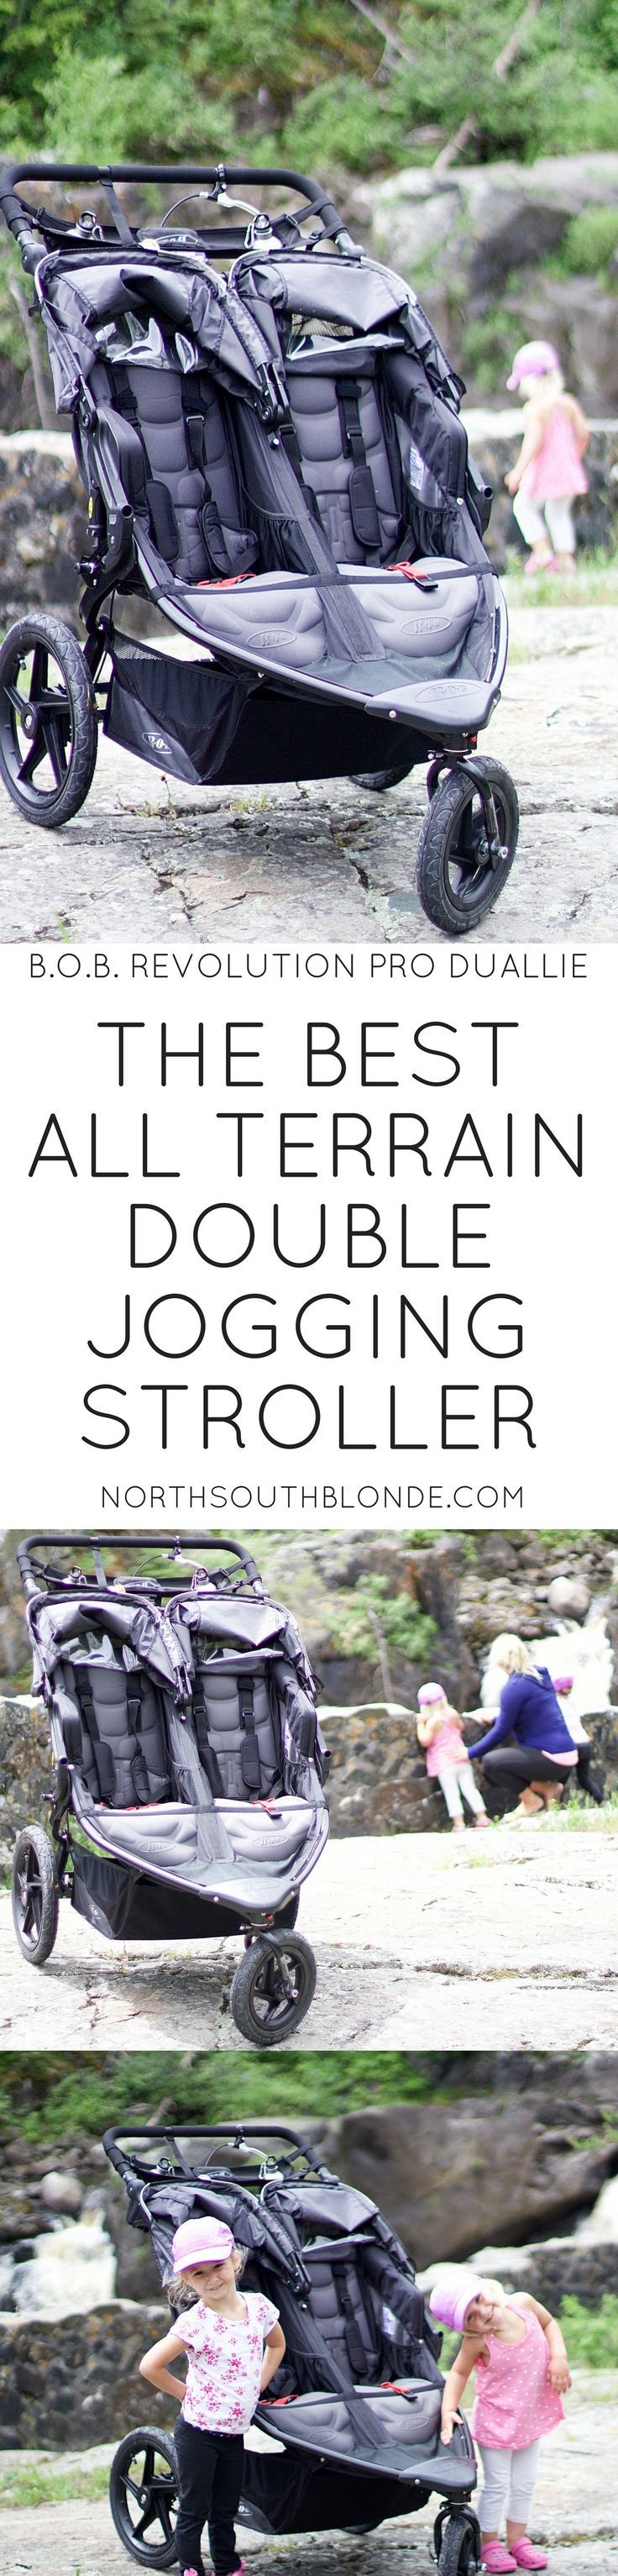 Looking for the best all terrain double jogging stroller? The B.O.B. Revolution PRO Duallie is all you'll ever need. This review gives the pros and cons, and how well it performs on rough terrain. On the rocky trails of Kap-Kig-Iwan, a provincial park located in northern Ontario Canada, with 2 toddlers well over 30 lbs each. Health | Fitness | Postpartum | Weight Loss | Double Stroller | BOB stroller | BOB Duallie | Jogging | Running | Motherhood | 2017 Review | Parenting Tips | Parenting…